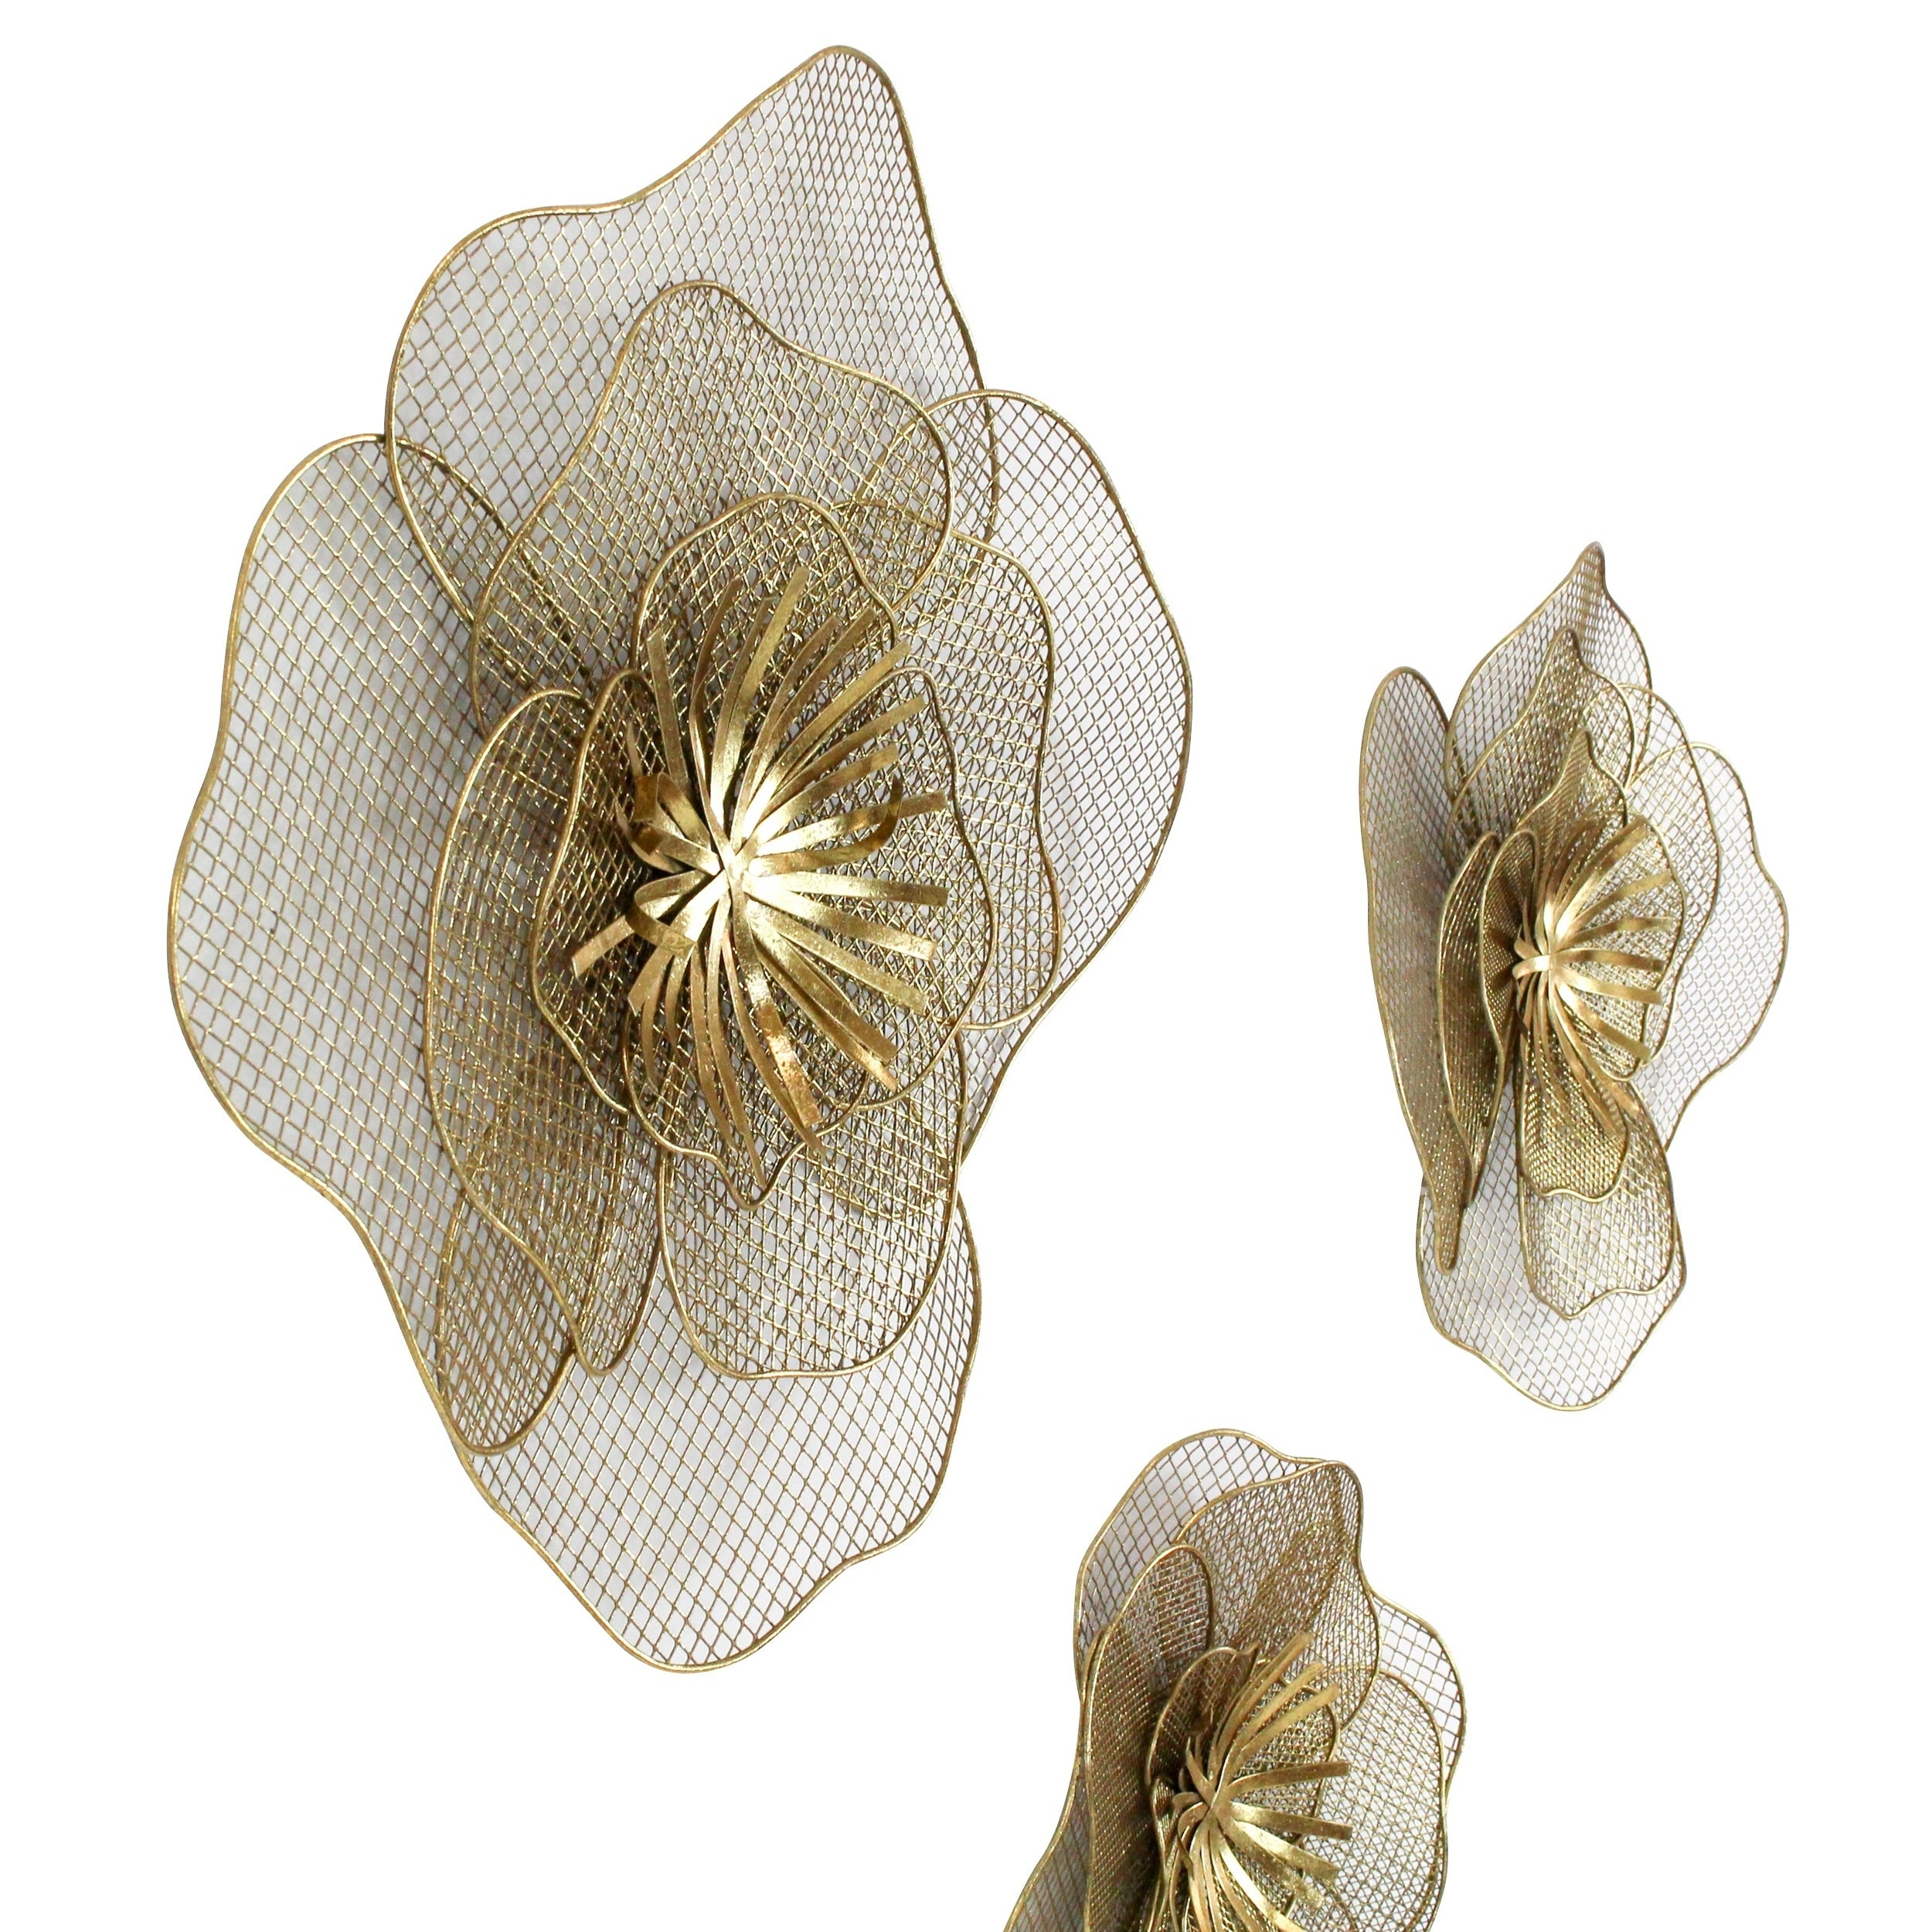 Lori Metal Flowers Wall Decor (Set Of 3) For Metal Flower Wall Decor (Set Of 3) (View 24 of 30)